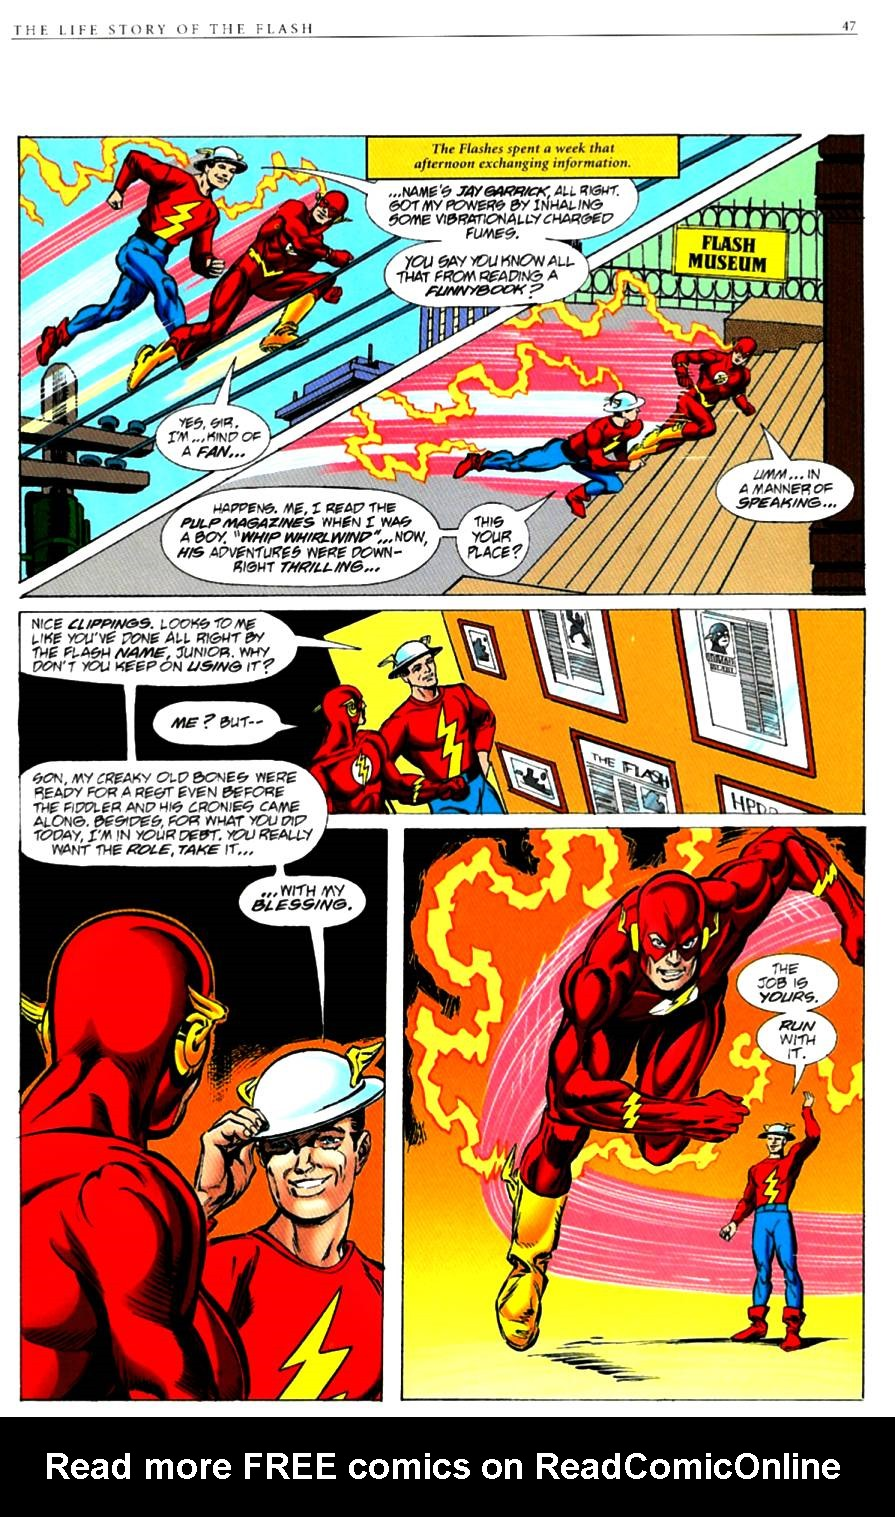 Read online The Life Story of the Flash comic -  Issue # Full - 49